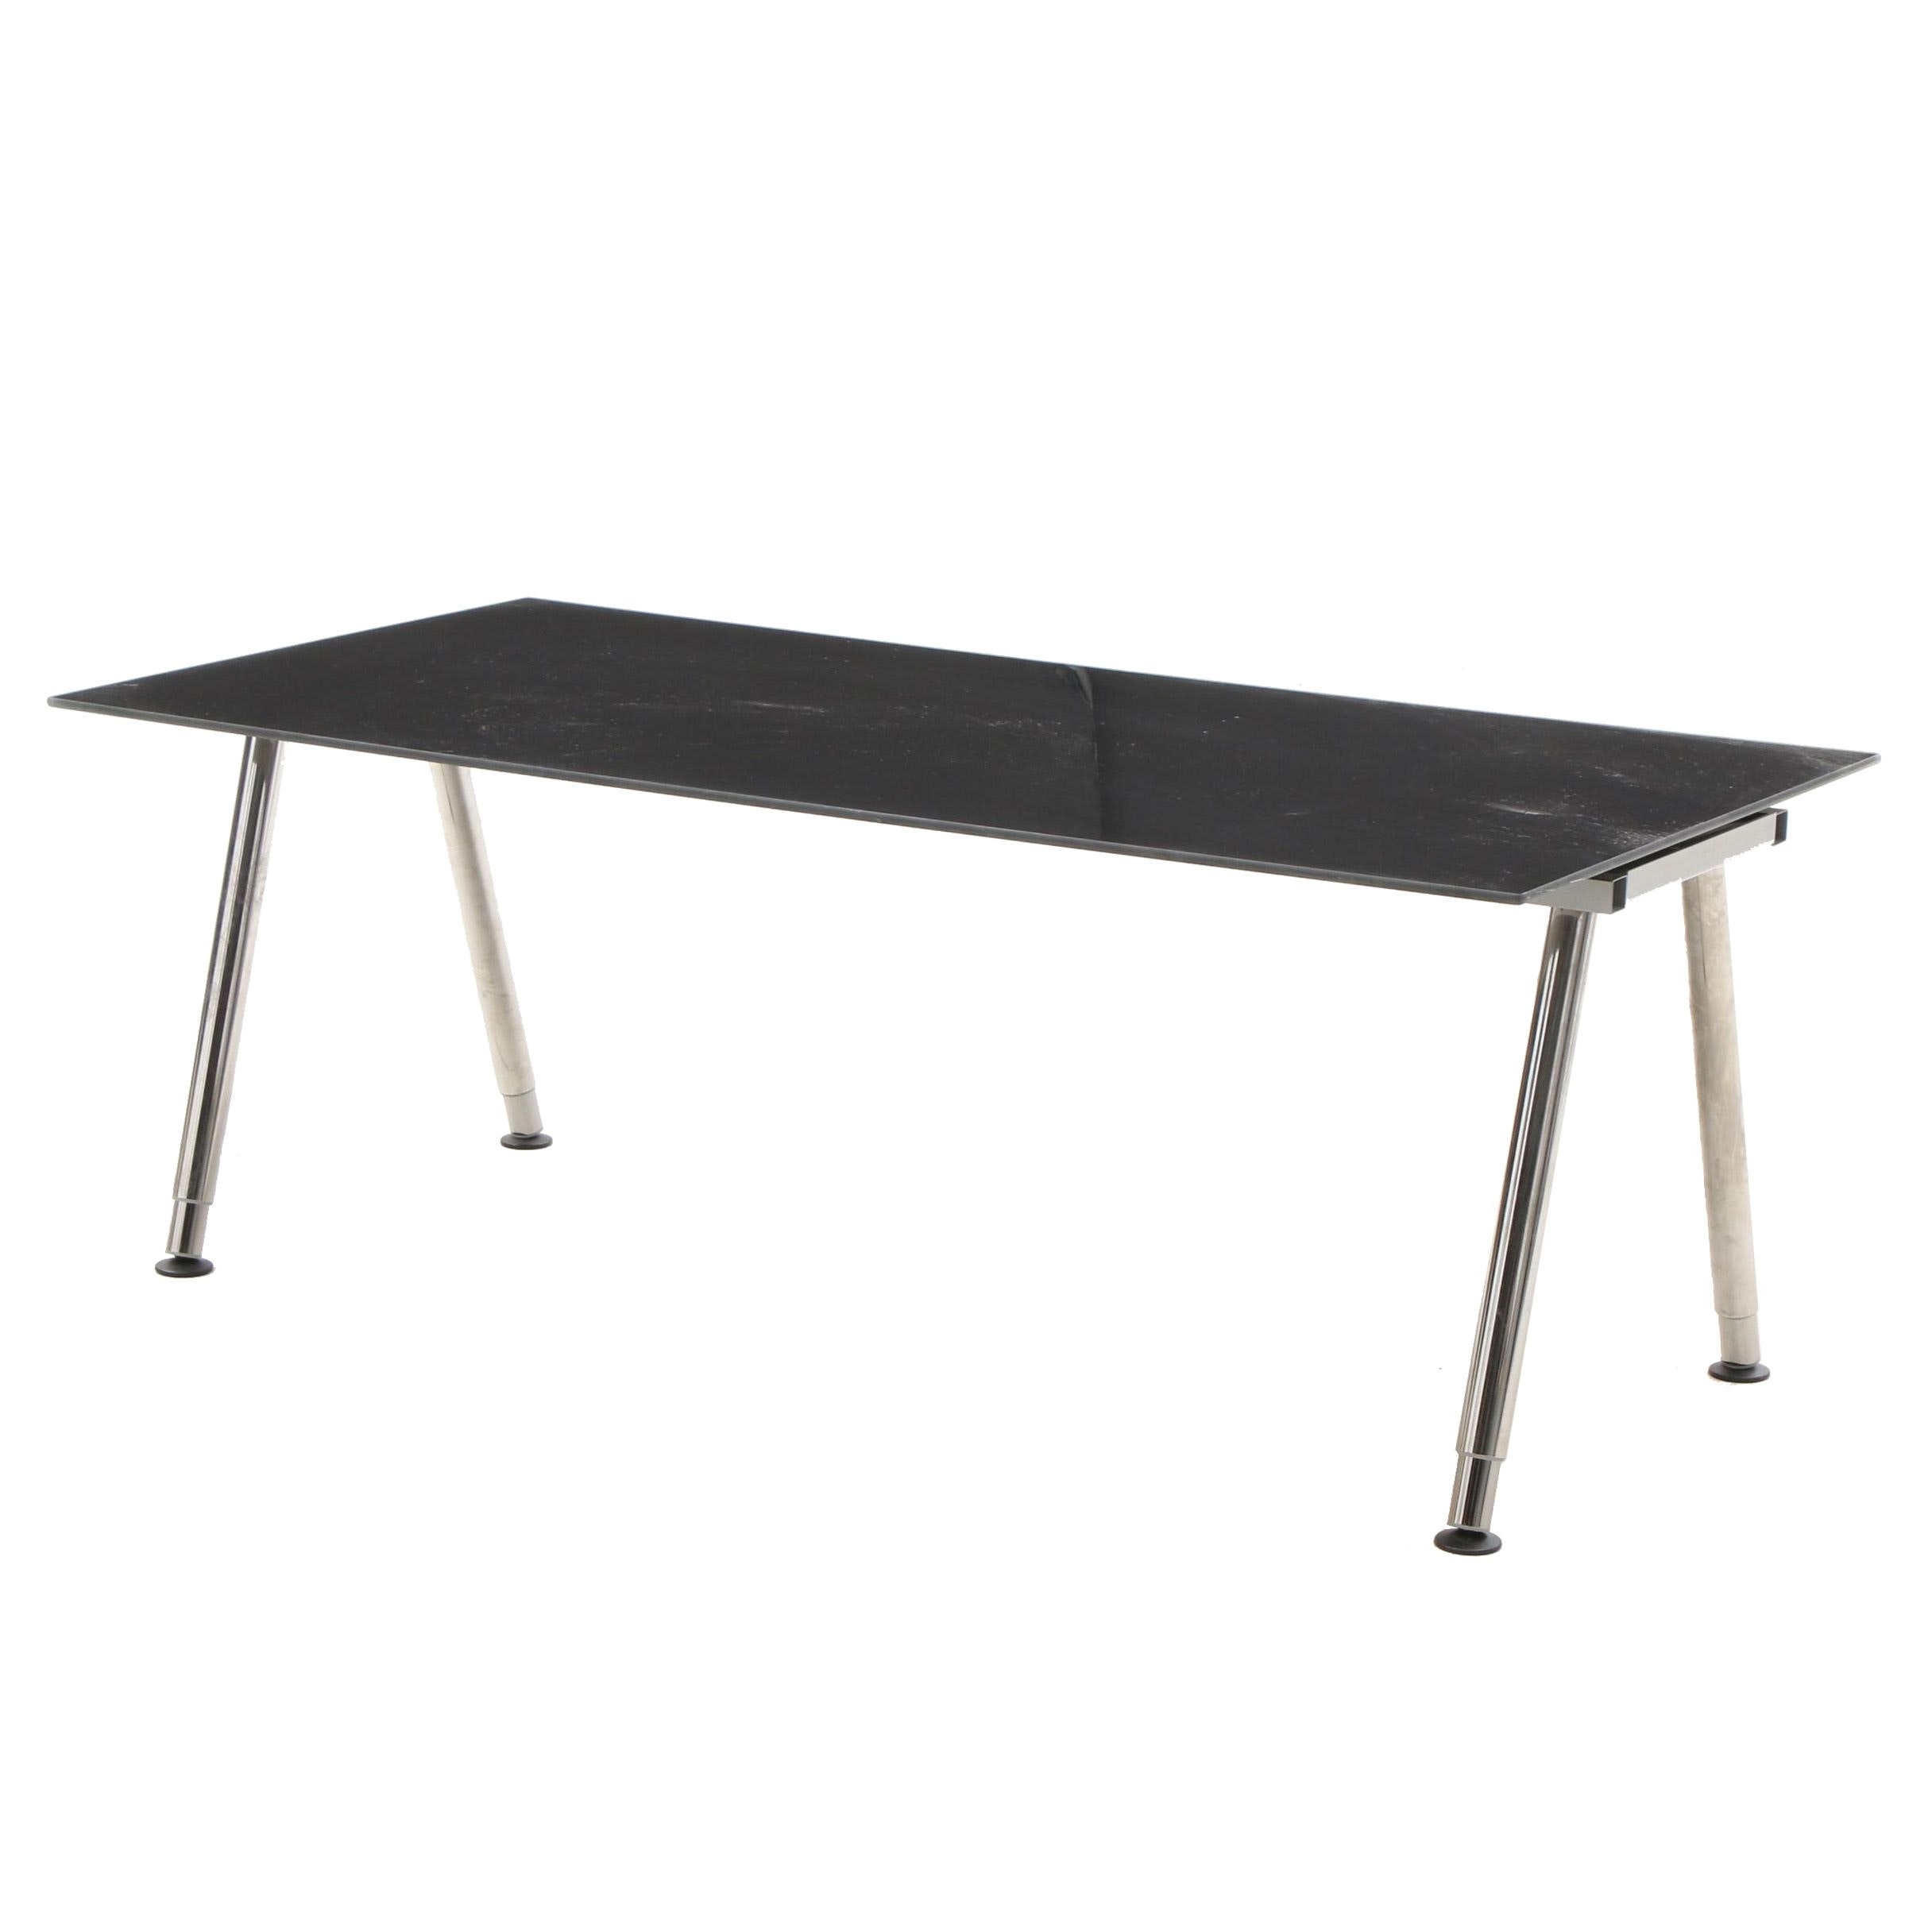 IKEA Galant Black Glass Table